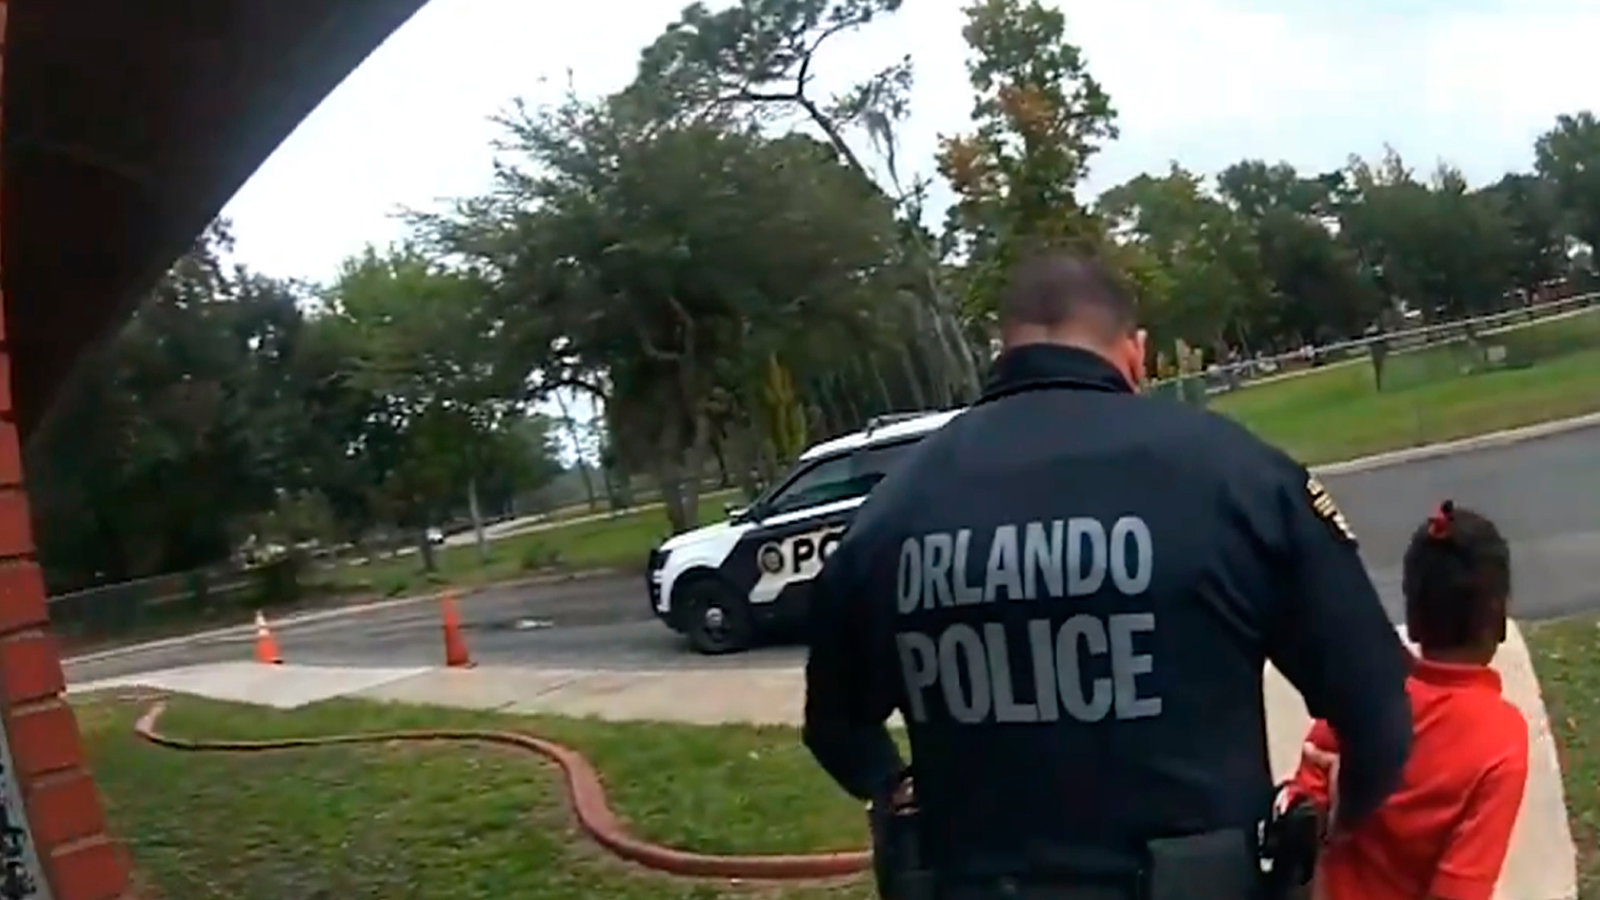 Body Camera Footage Shows Arrest by Orlando Police of 6-Year-Old at School